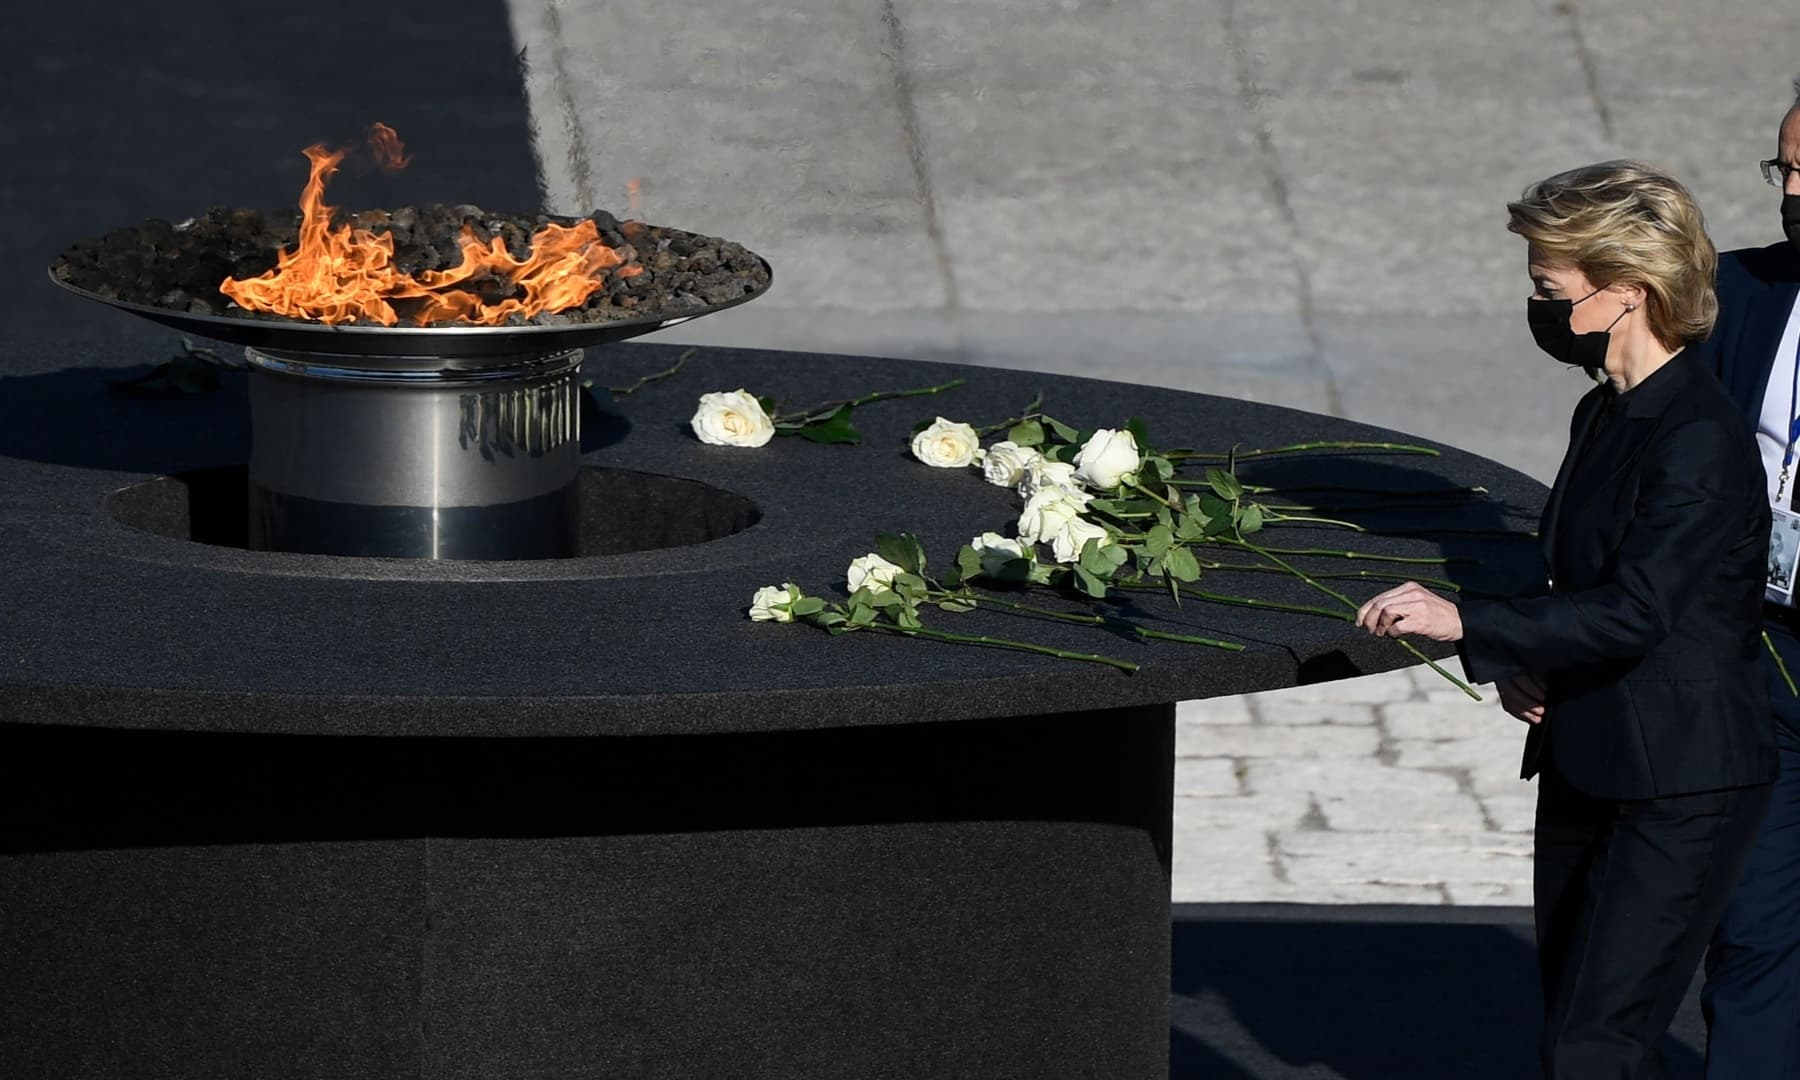 President of the European Commision Ursula von der Leyen leaves a rose next to a cauldron during a state ceremony to honour the 28,400 victims of Covid-19 as well as those public servants who have been fighting on the front line against the pandemic in Spain. — AFP